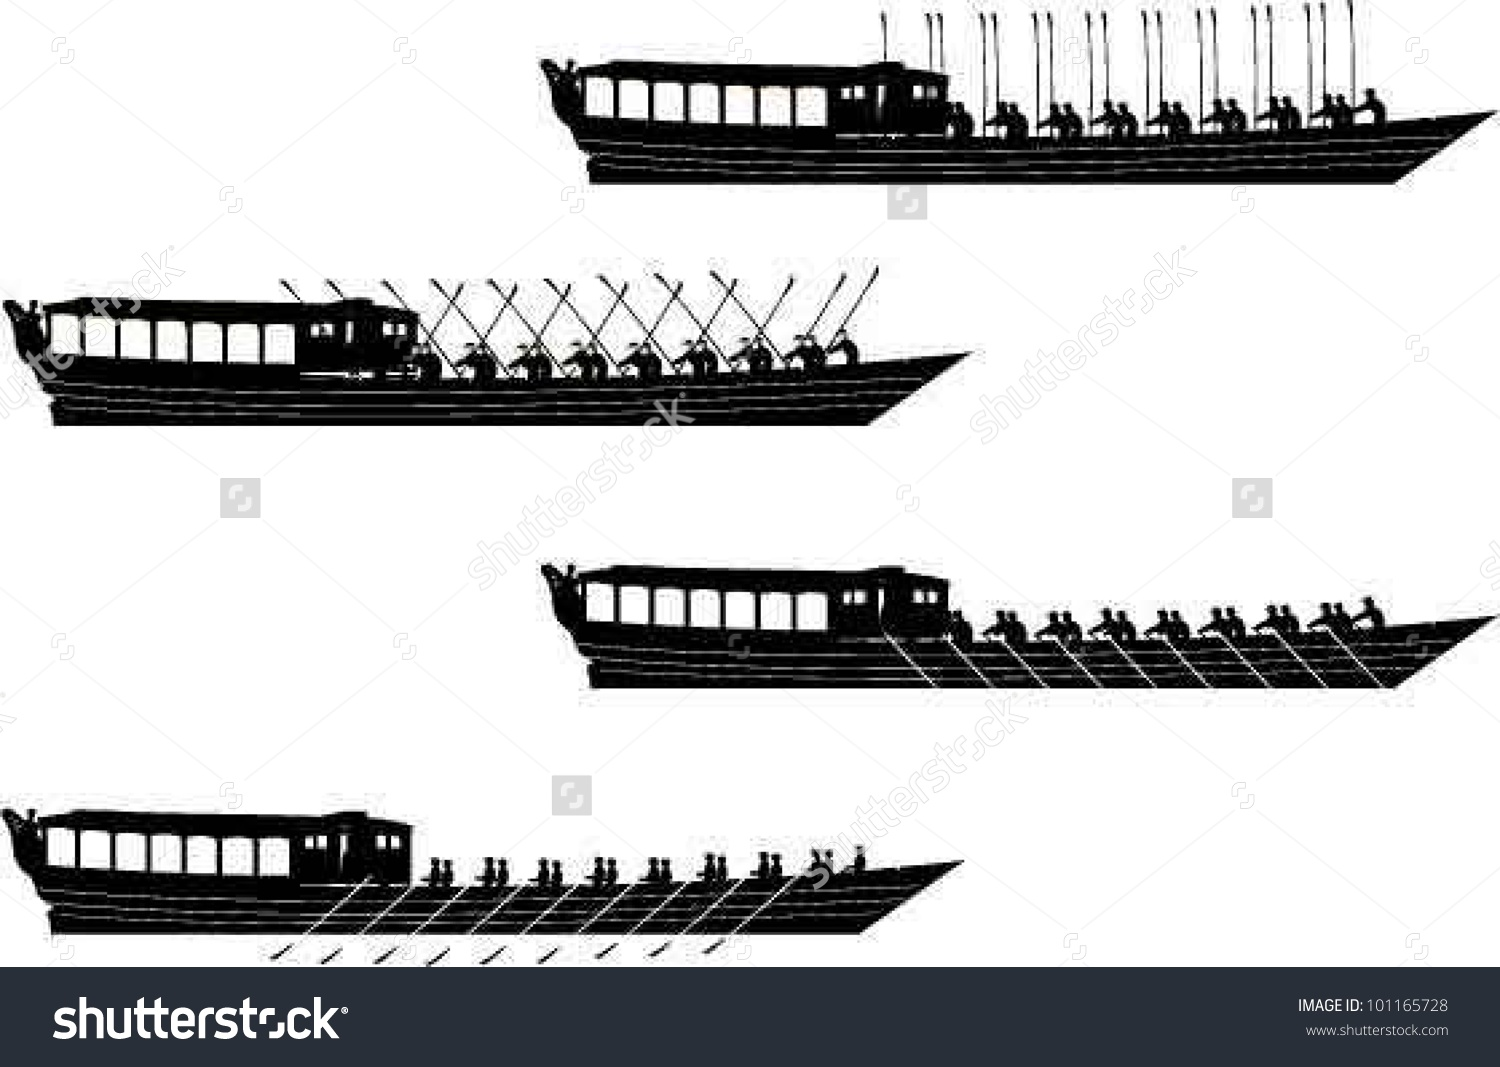 Queens Diamond Jubilee Barge Silhouettes Stock Vector Illustration.